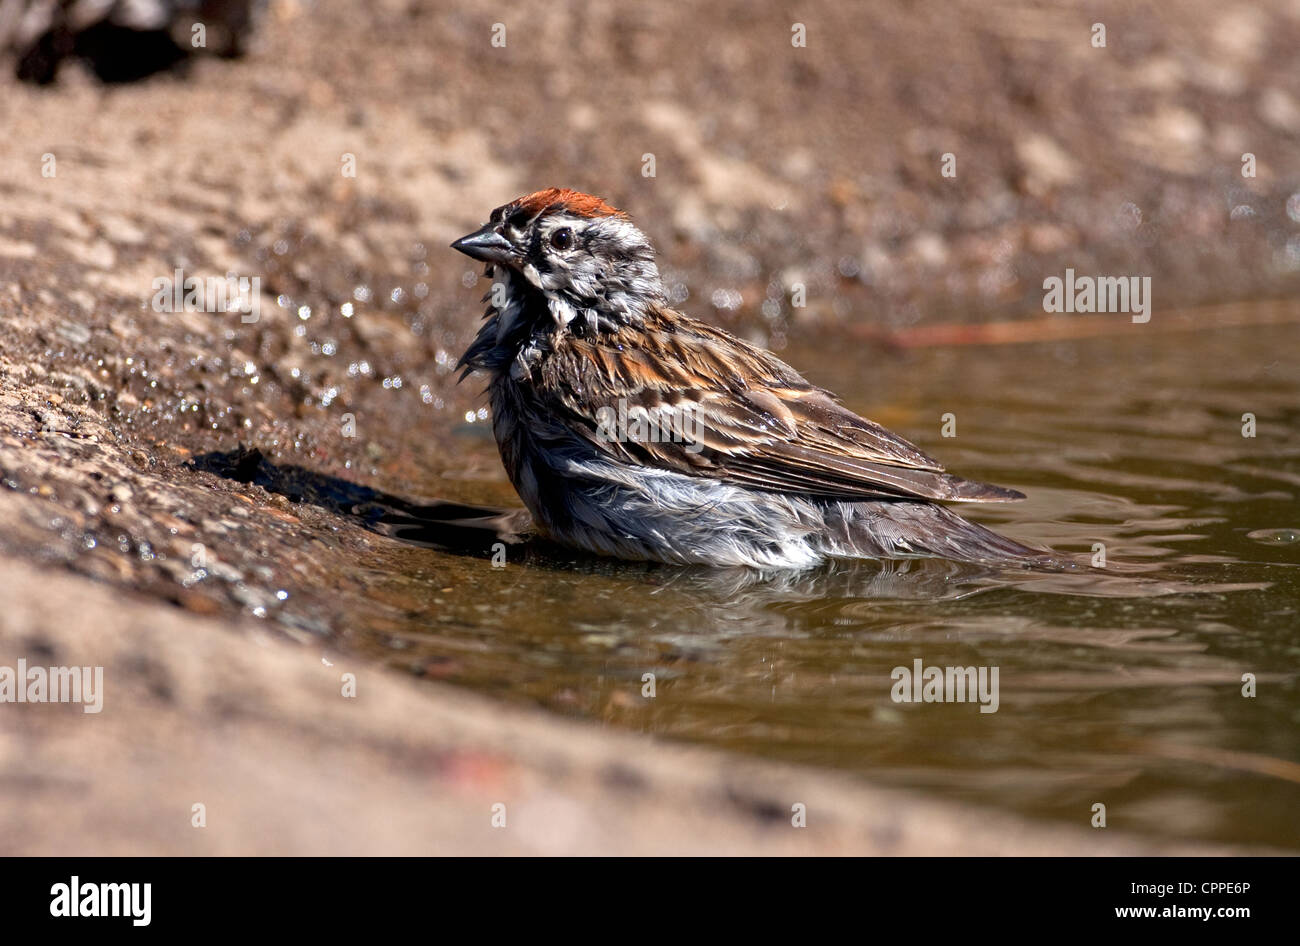 Chipping Sparrow (Spizella passerina) bathing in a small pond at Cabin Lake, Oregon, USA in June. - Stock Image